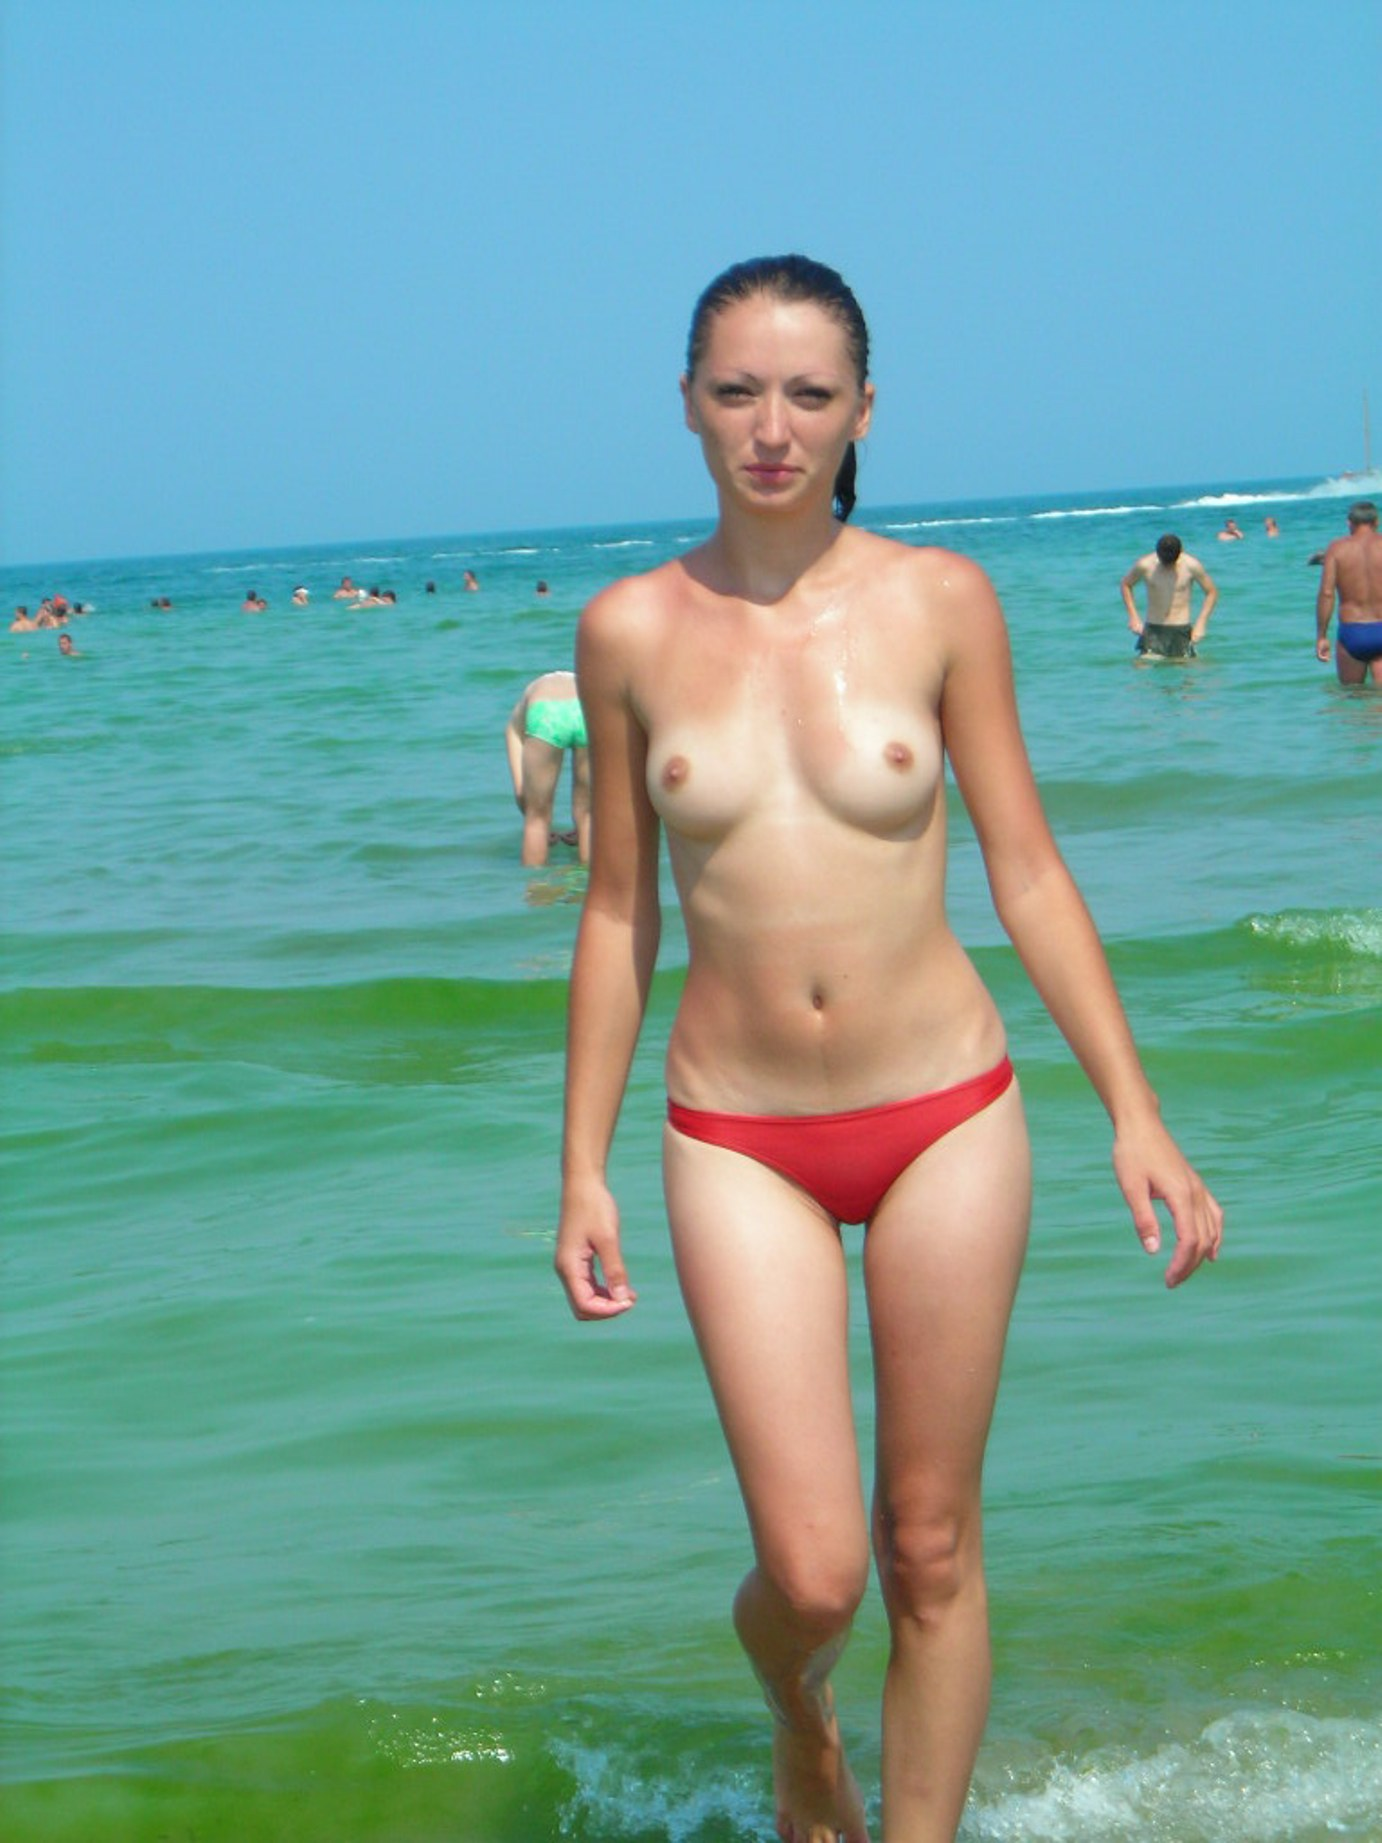 Topless Beach Girls, beautiful topless naked nude